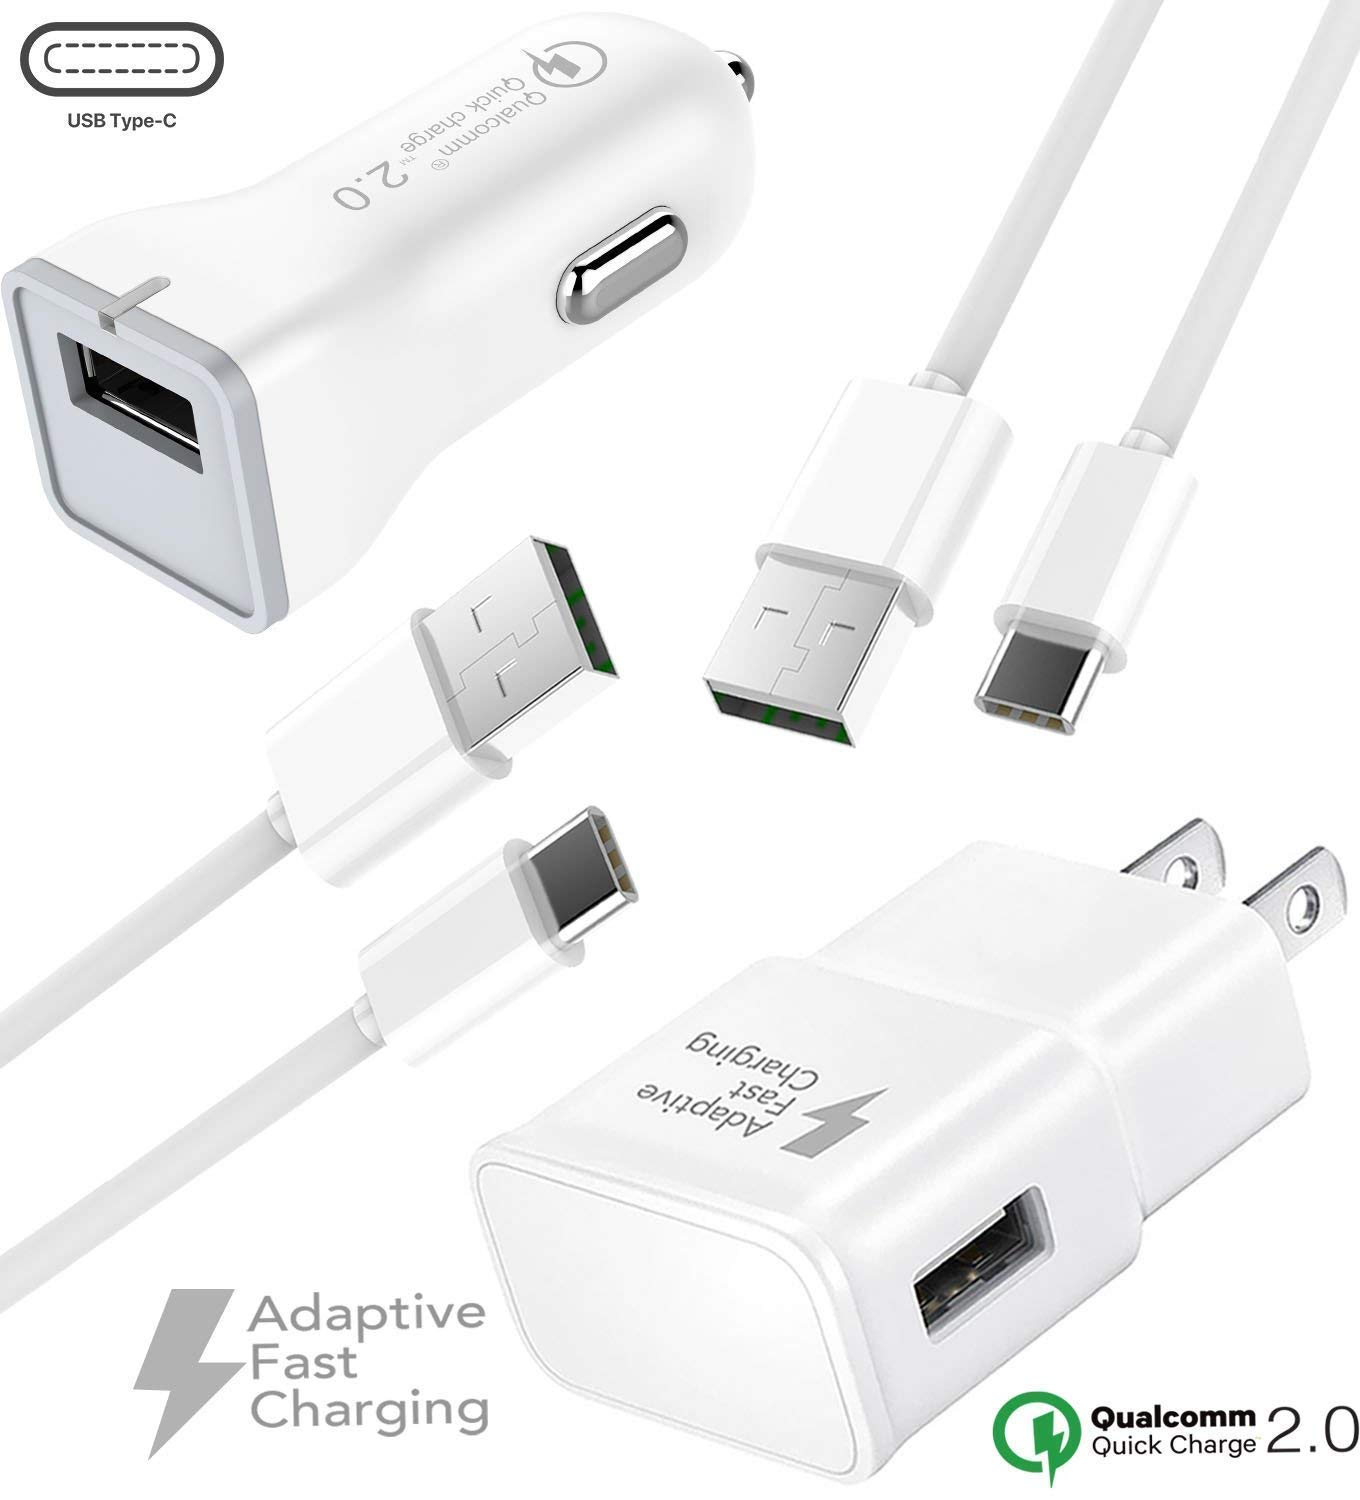 Note 8 Quick Charger Set Galaxy S8 Galaxy S9 Fast Wall Charger + 1 Type-C Cable Fast Wall and Car Charger with USB-C 2.0 Cable Set by TruWire Compatible with Samsung Products